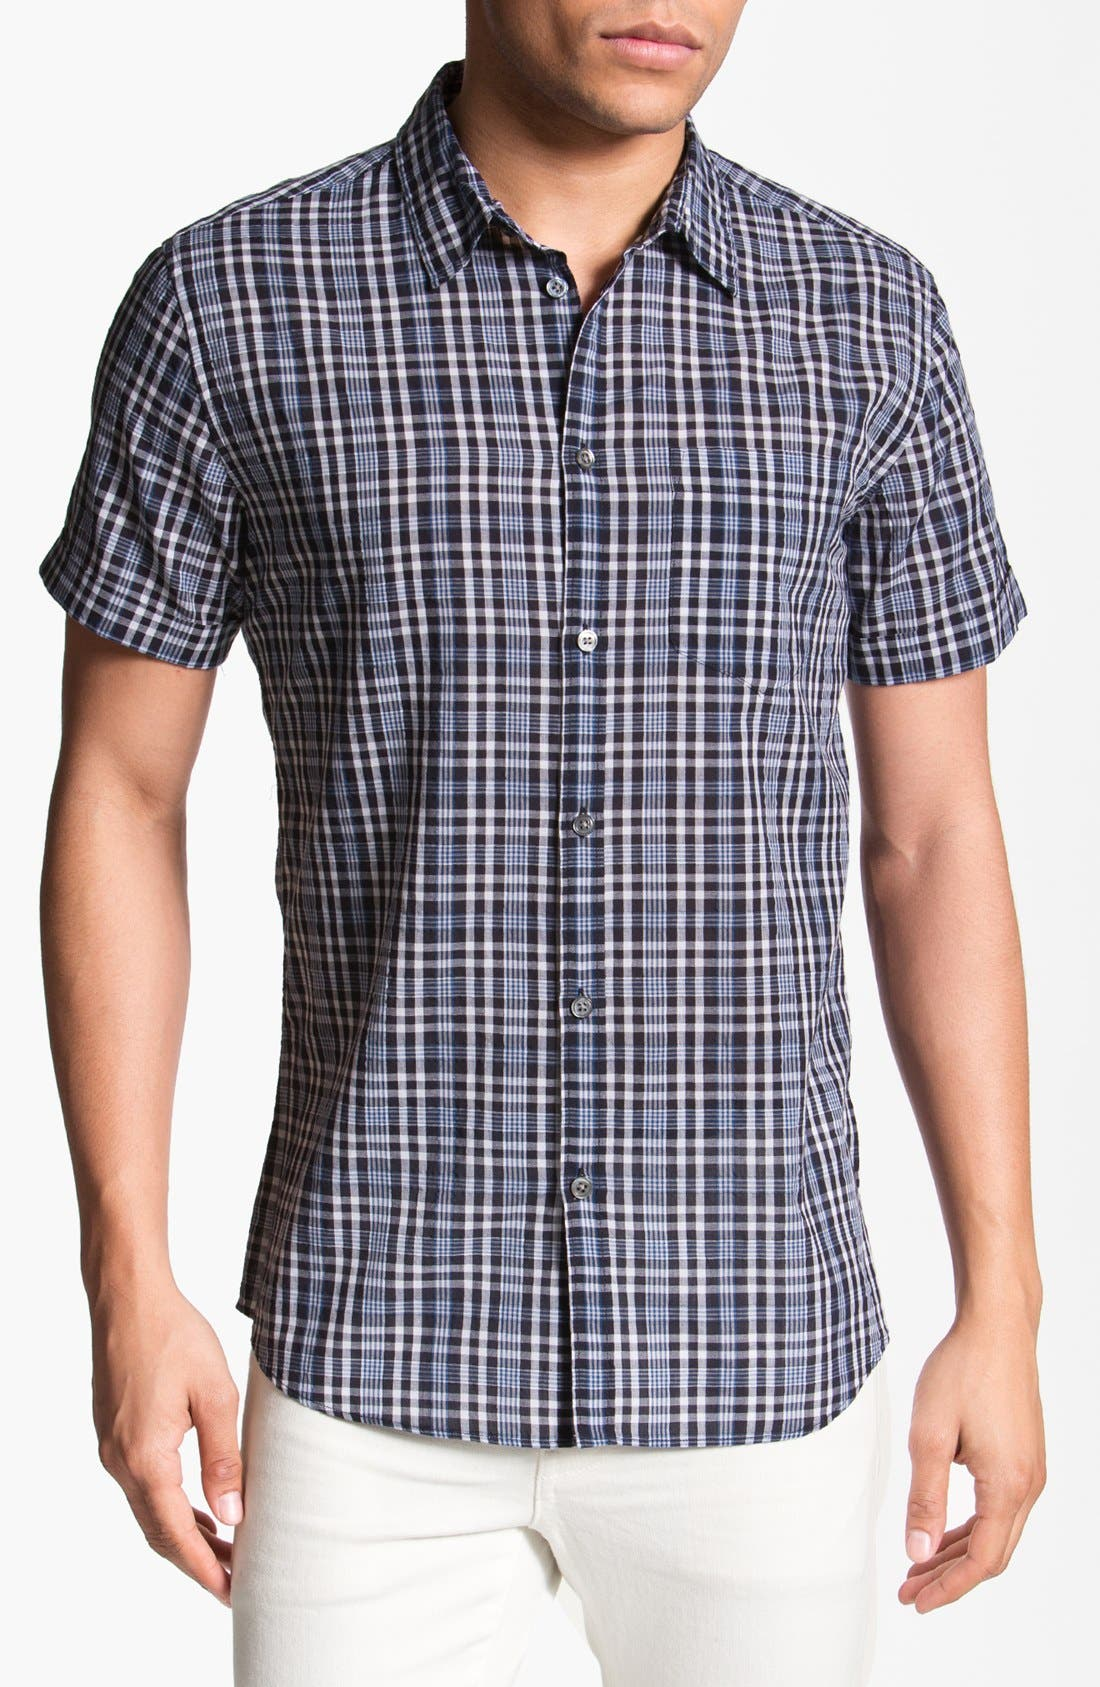 Alternate Image 1 Selected - MARC BY MARC JACOBS 'Dustin' Short Sleeve Woven Shirt